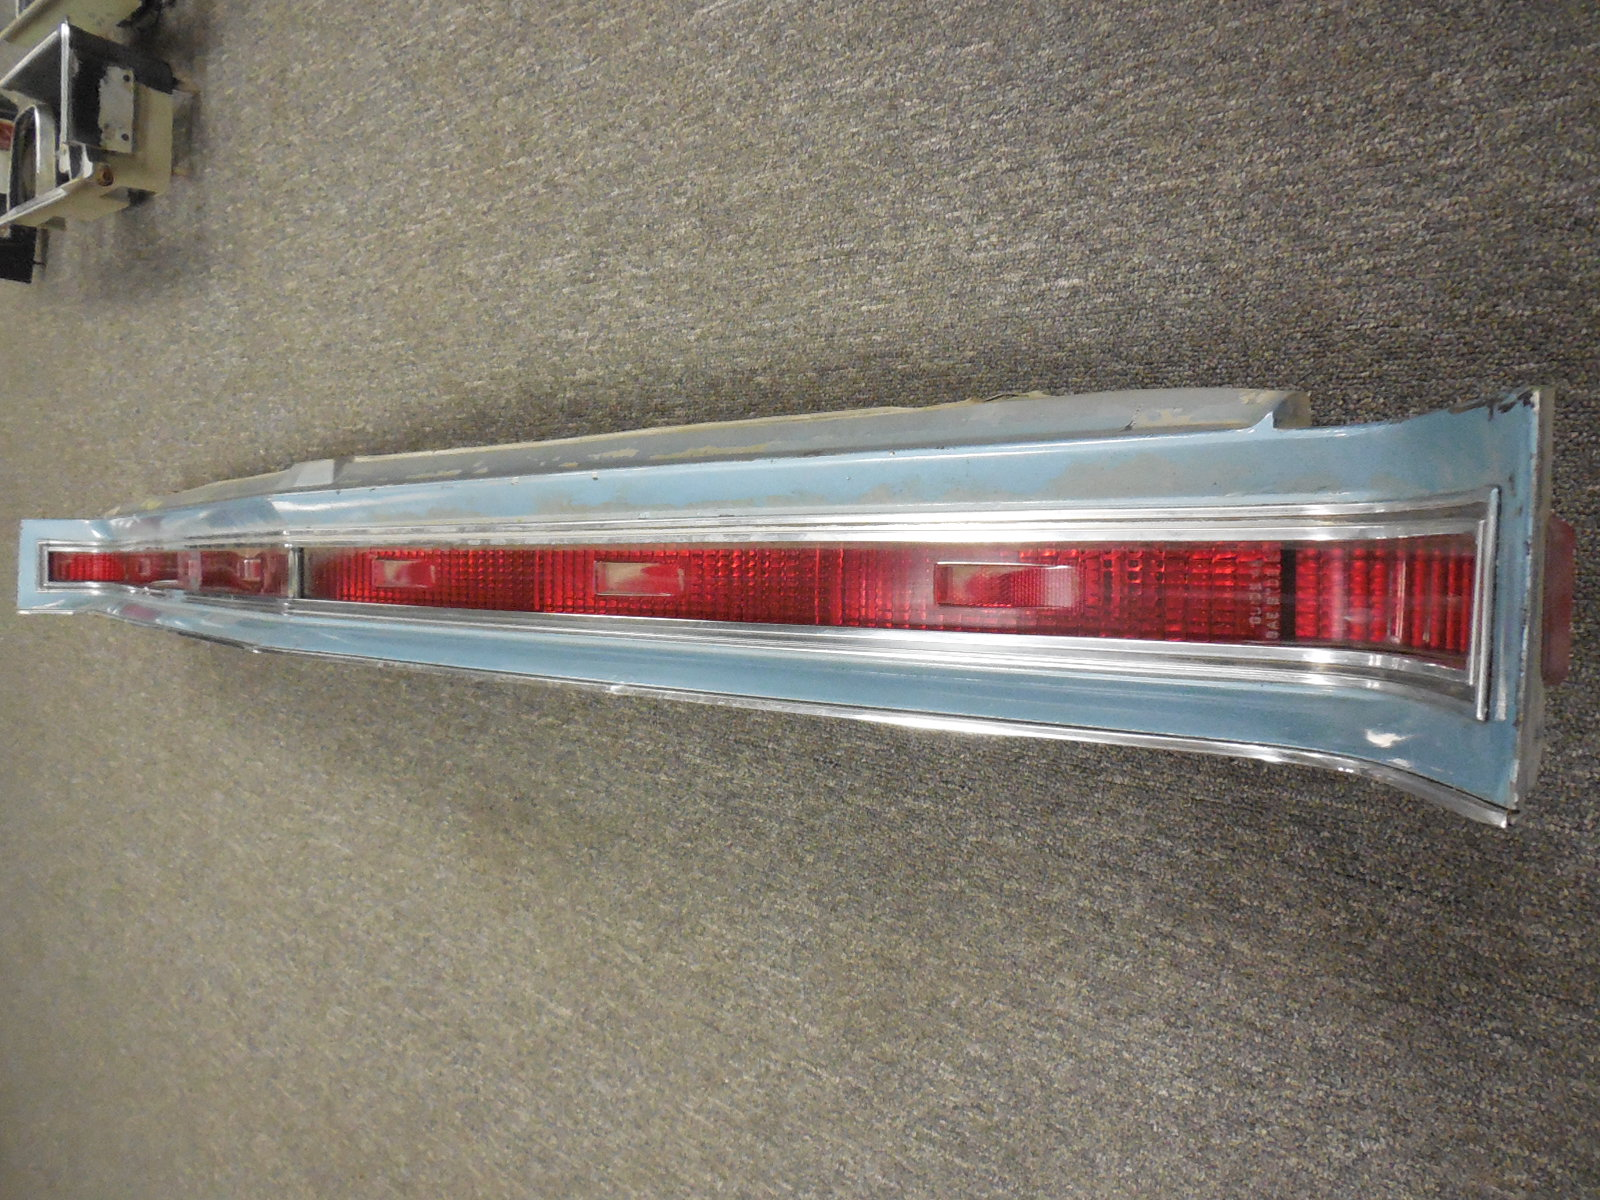 1967 Buick Electra Tail Light Gm Sports